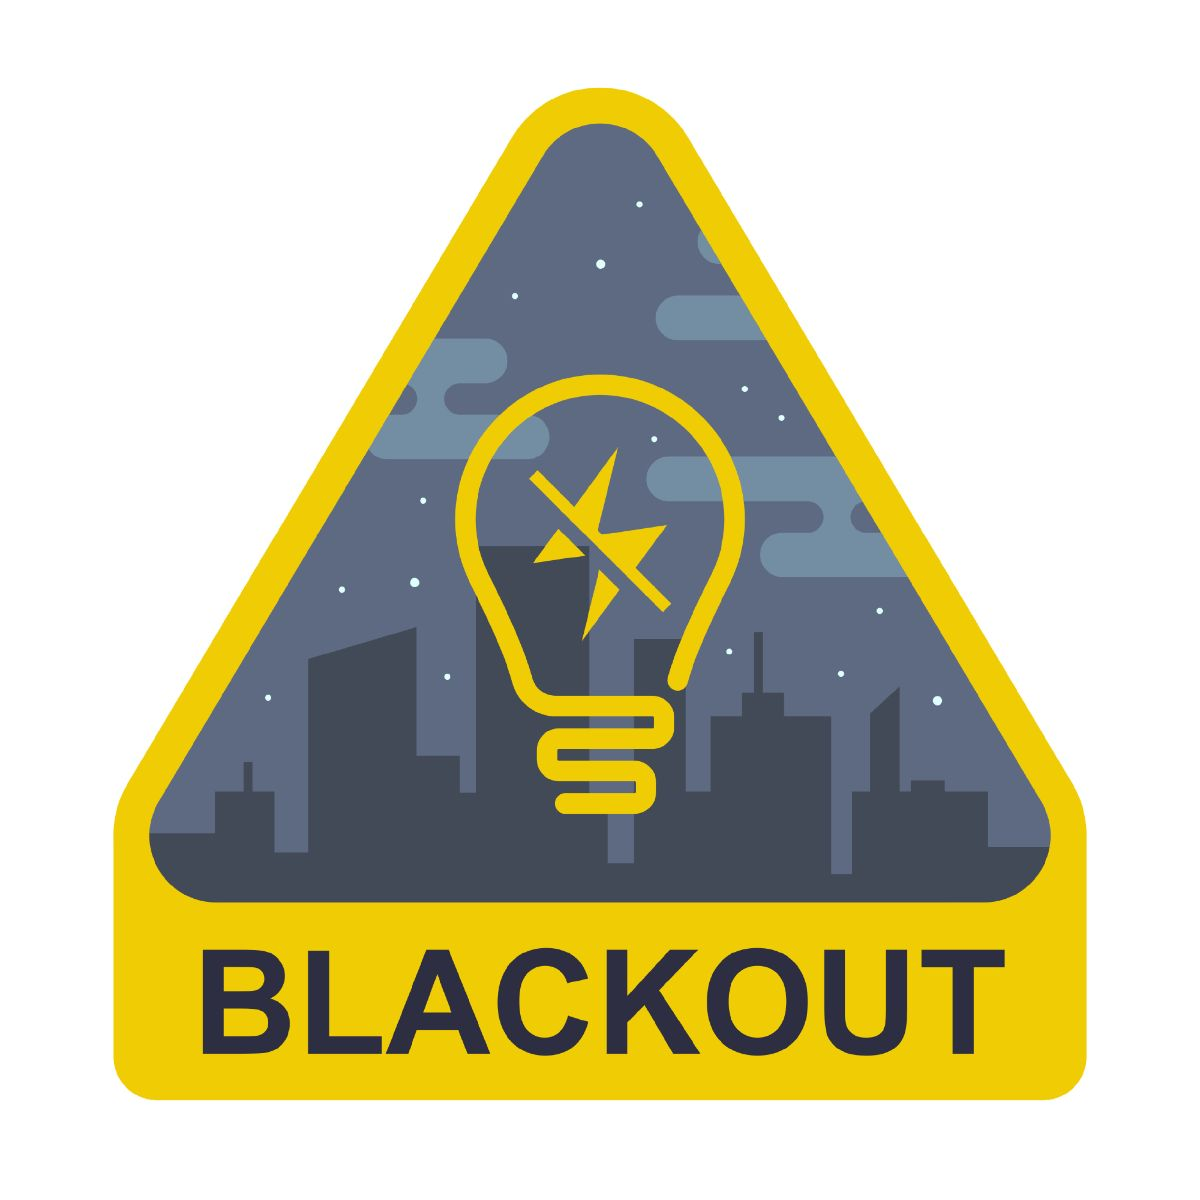 black out yellow sign